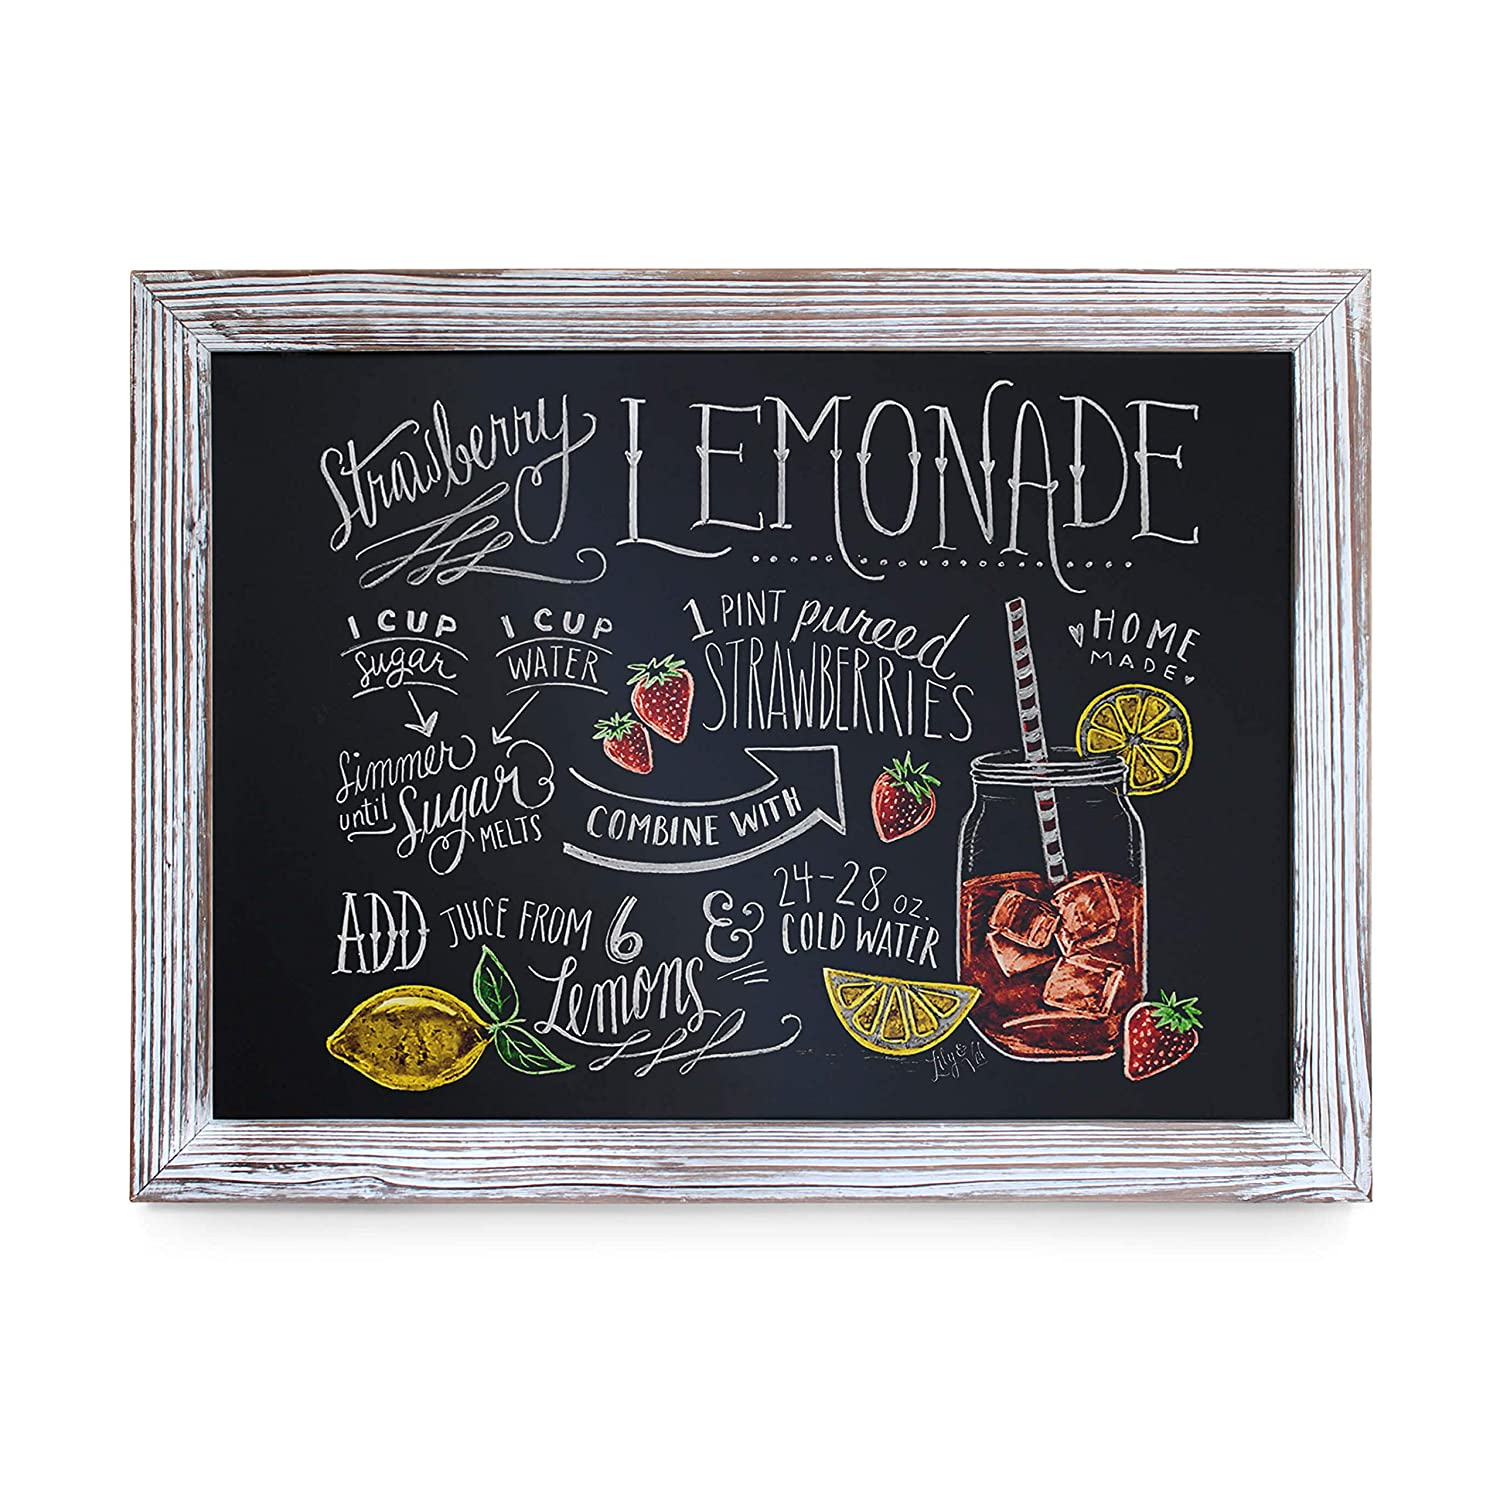 "Rustic Whitewashed Magnetic Wall Chalkboard, Large Size 18"" x 24"", Framed Chalkboard - Decorative Magnet Board Great for Kitchen Decor, Weddings, Restaurant Menus and More! … (18"" x 24"")"